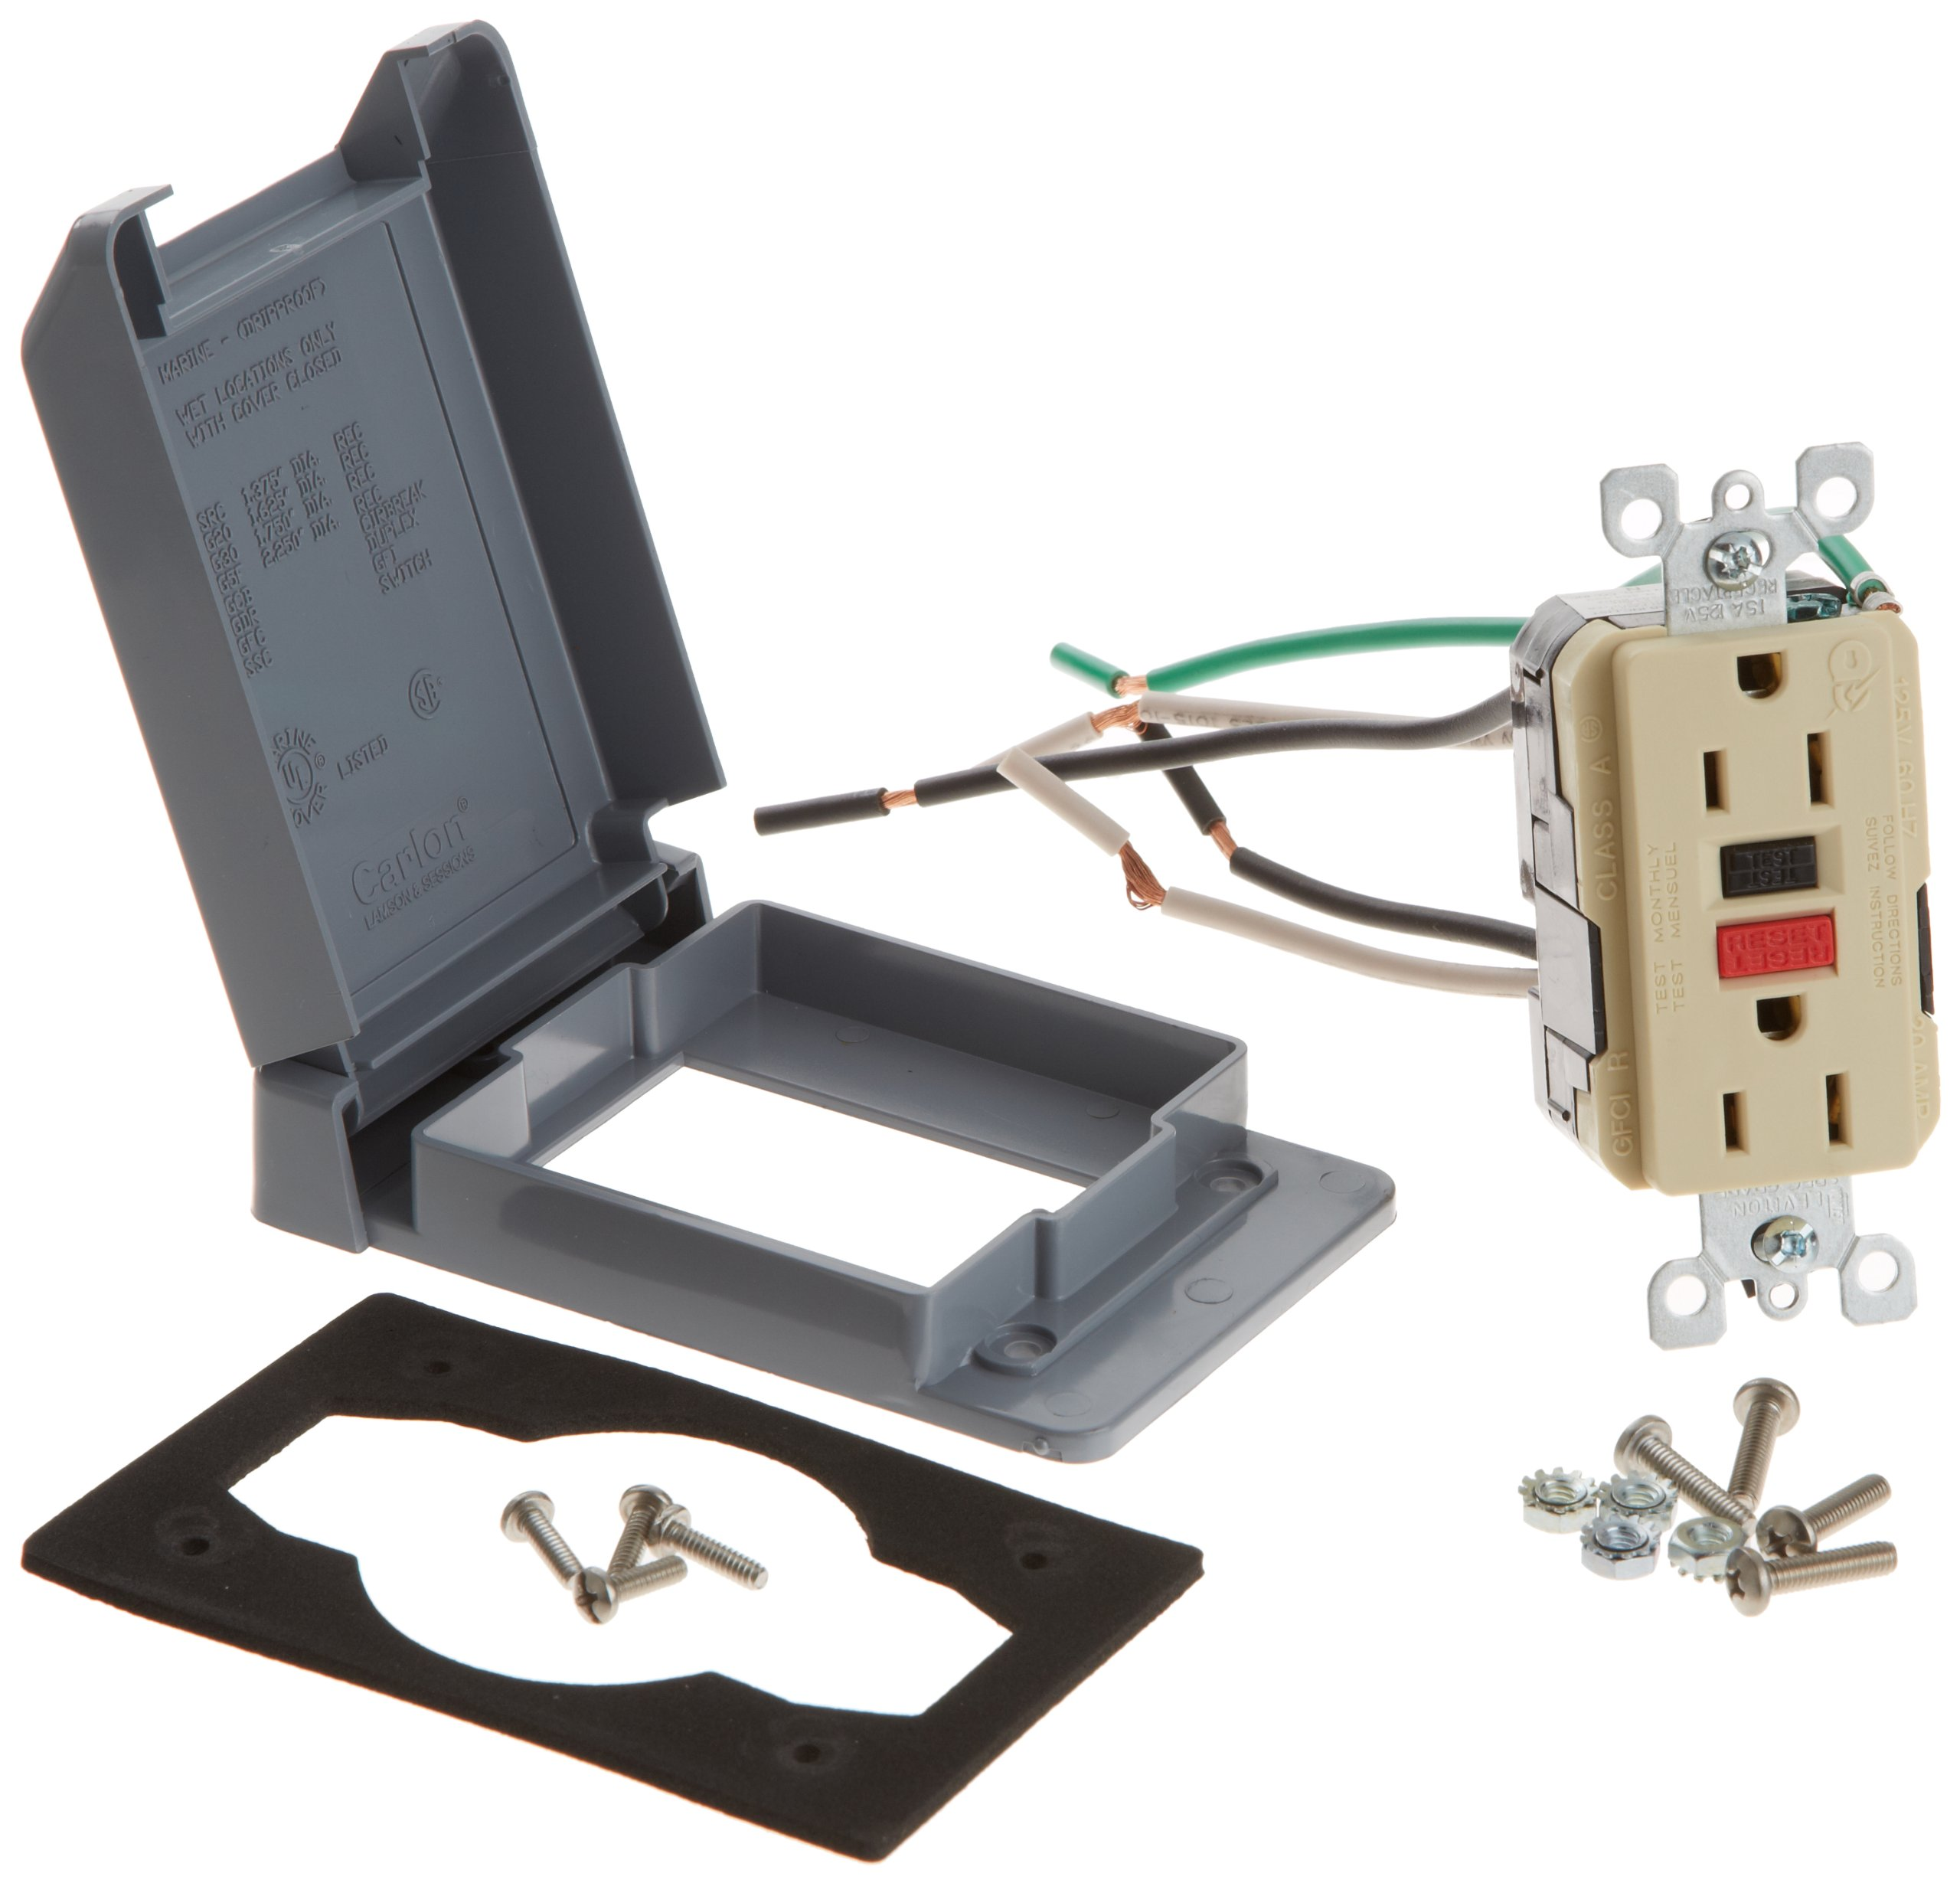 Zodiac 6070 Ground Fault Circuit Interrupters Kit Replacement for Select Zodiac Jandy Power Centers